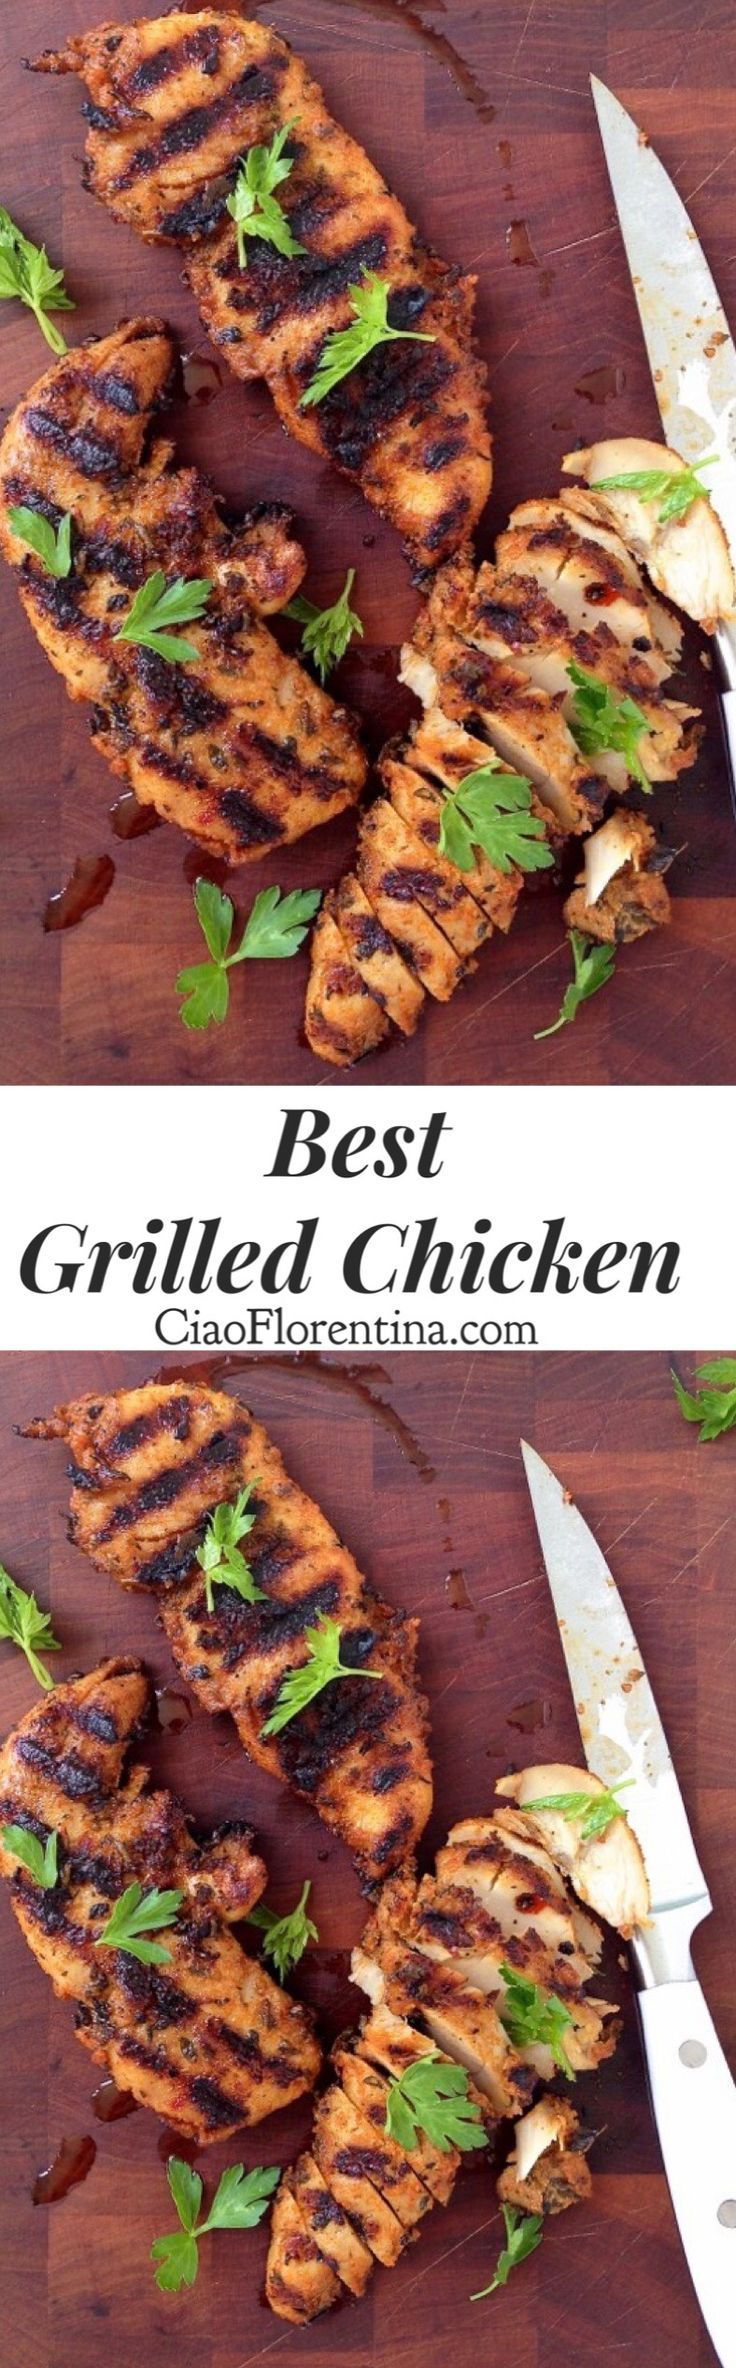 Best Grilled Chicken Recipe, quick and easy made with tenderloin and a magical smoky homemade spice mix | http://CiaoFlorentina.com @CiaoFlorentina